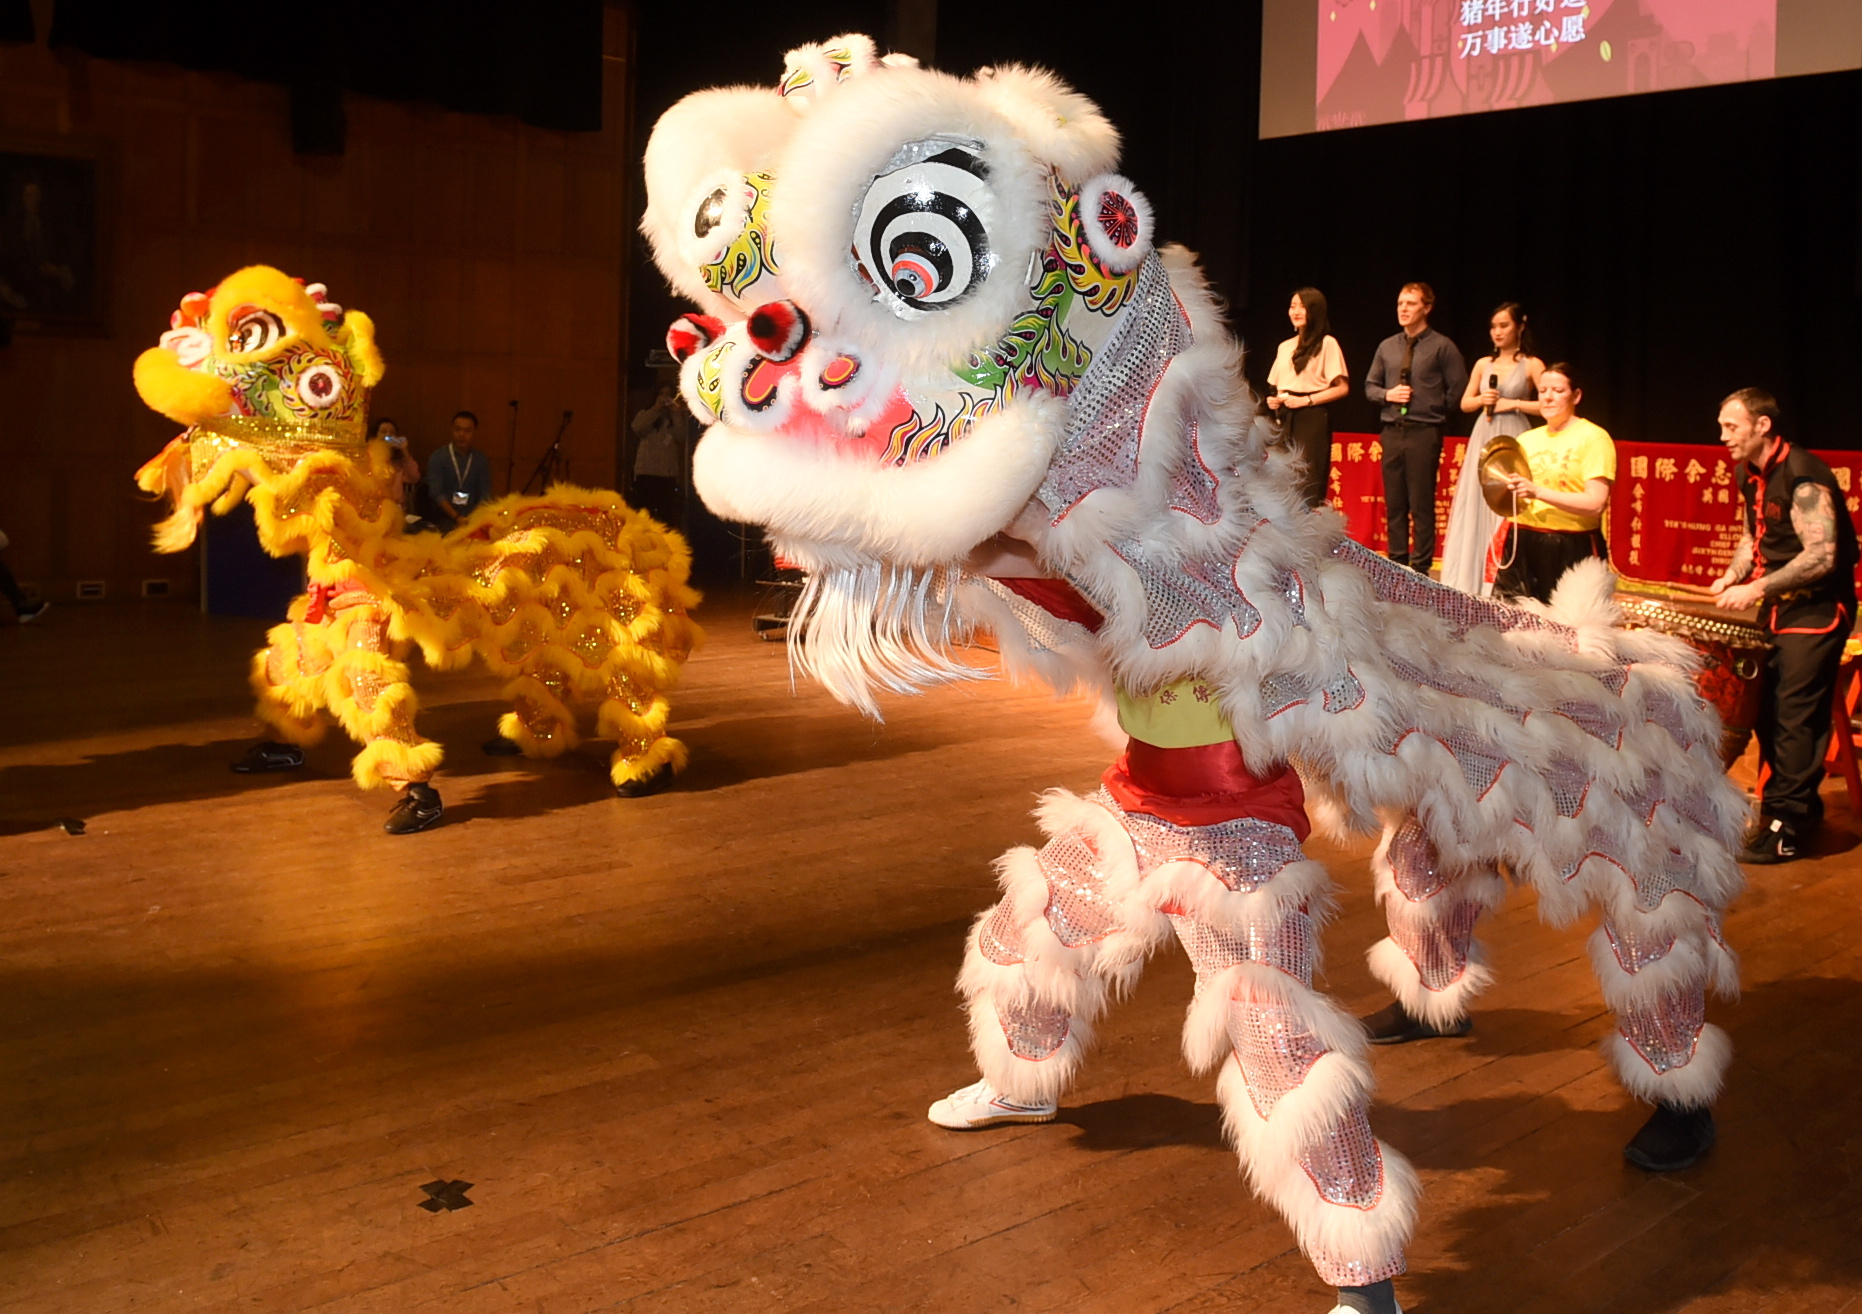 The Chinese new year gala show at Aberdeen University